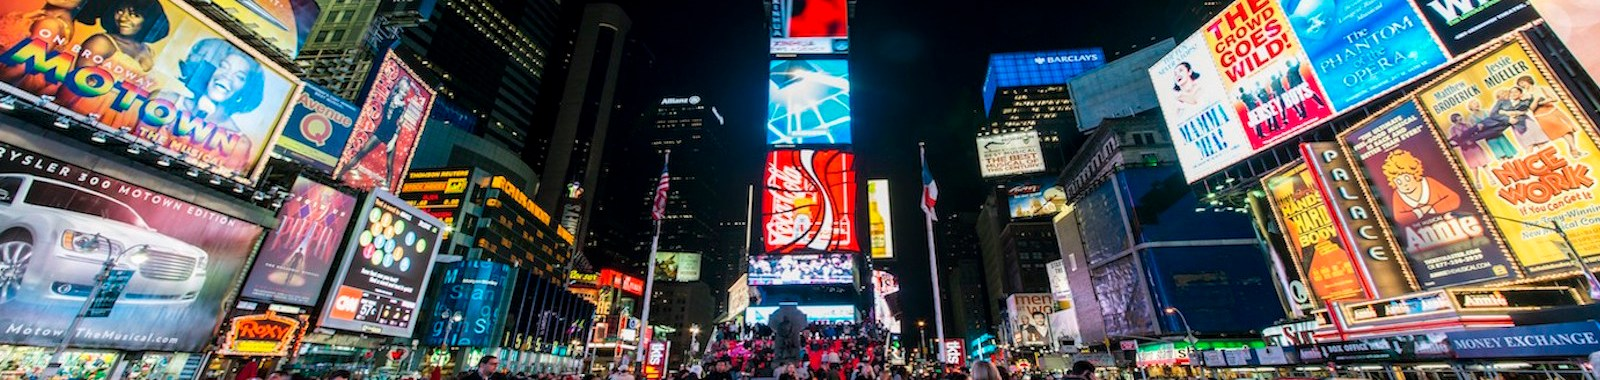 banner-times-square